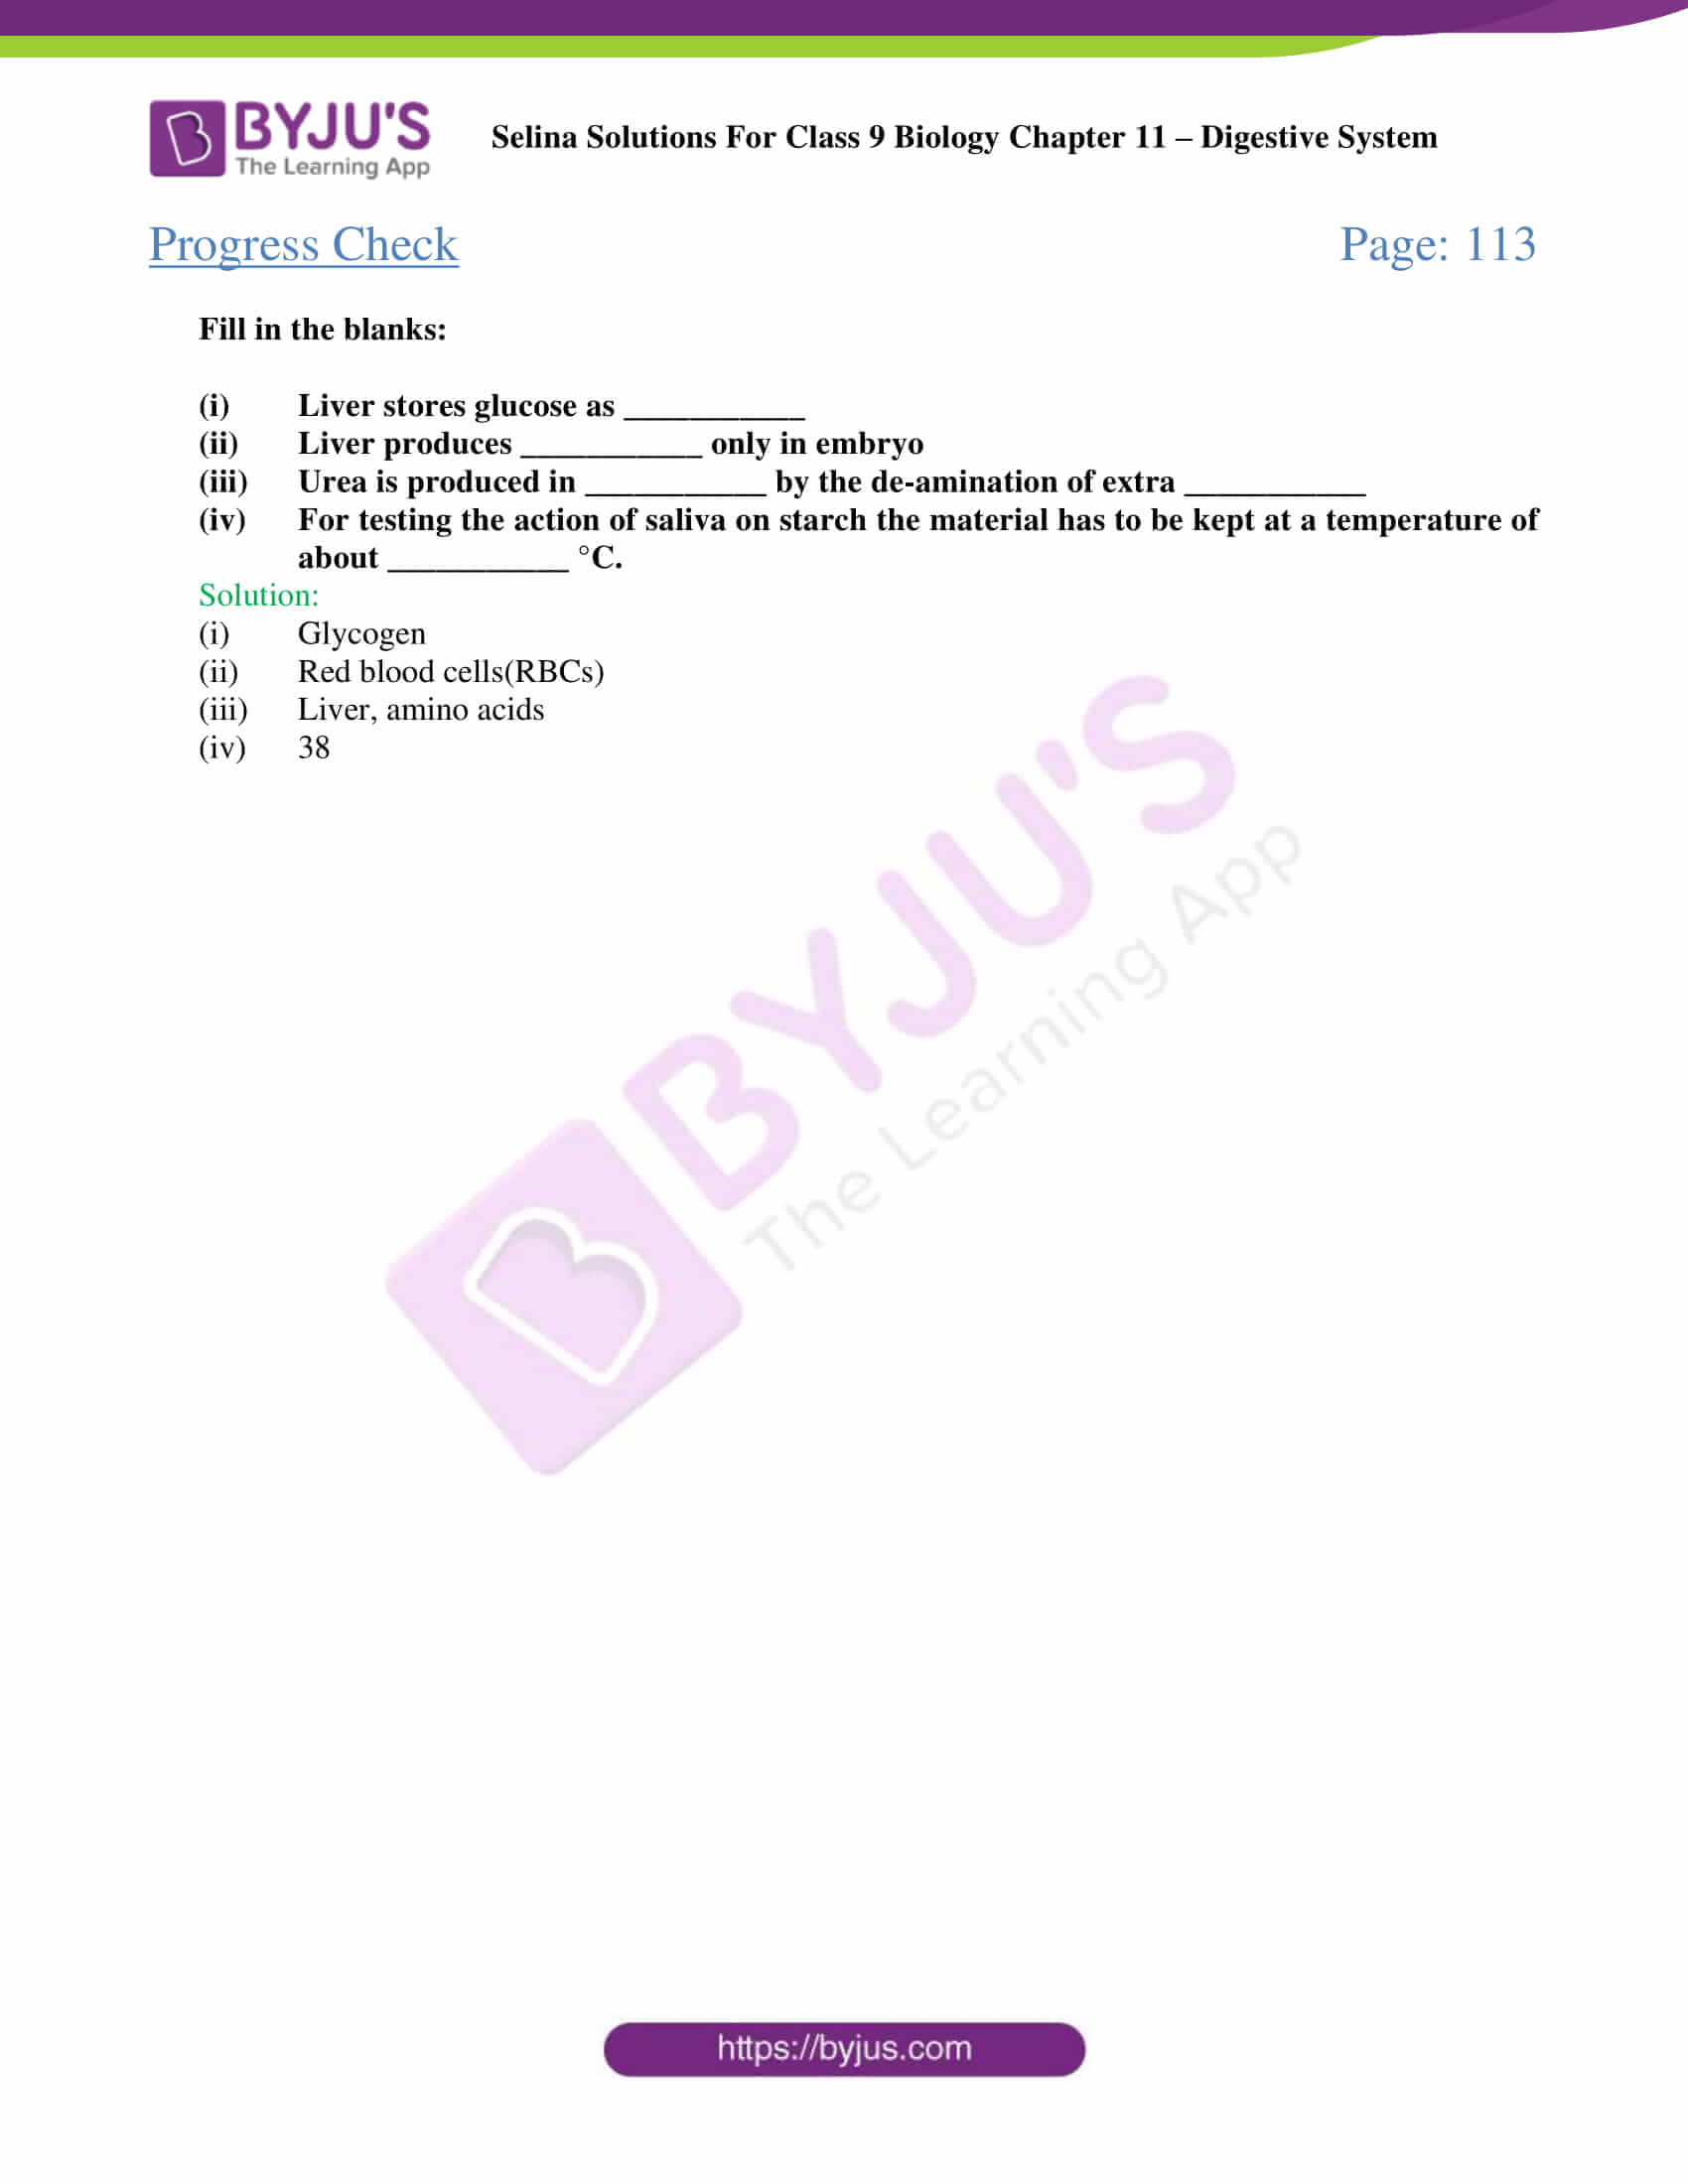 selina Solutions For Class 9 Biology Chapter 11 part 04